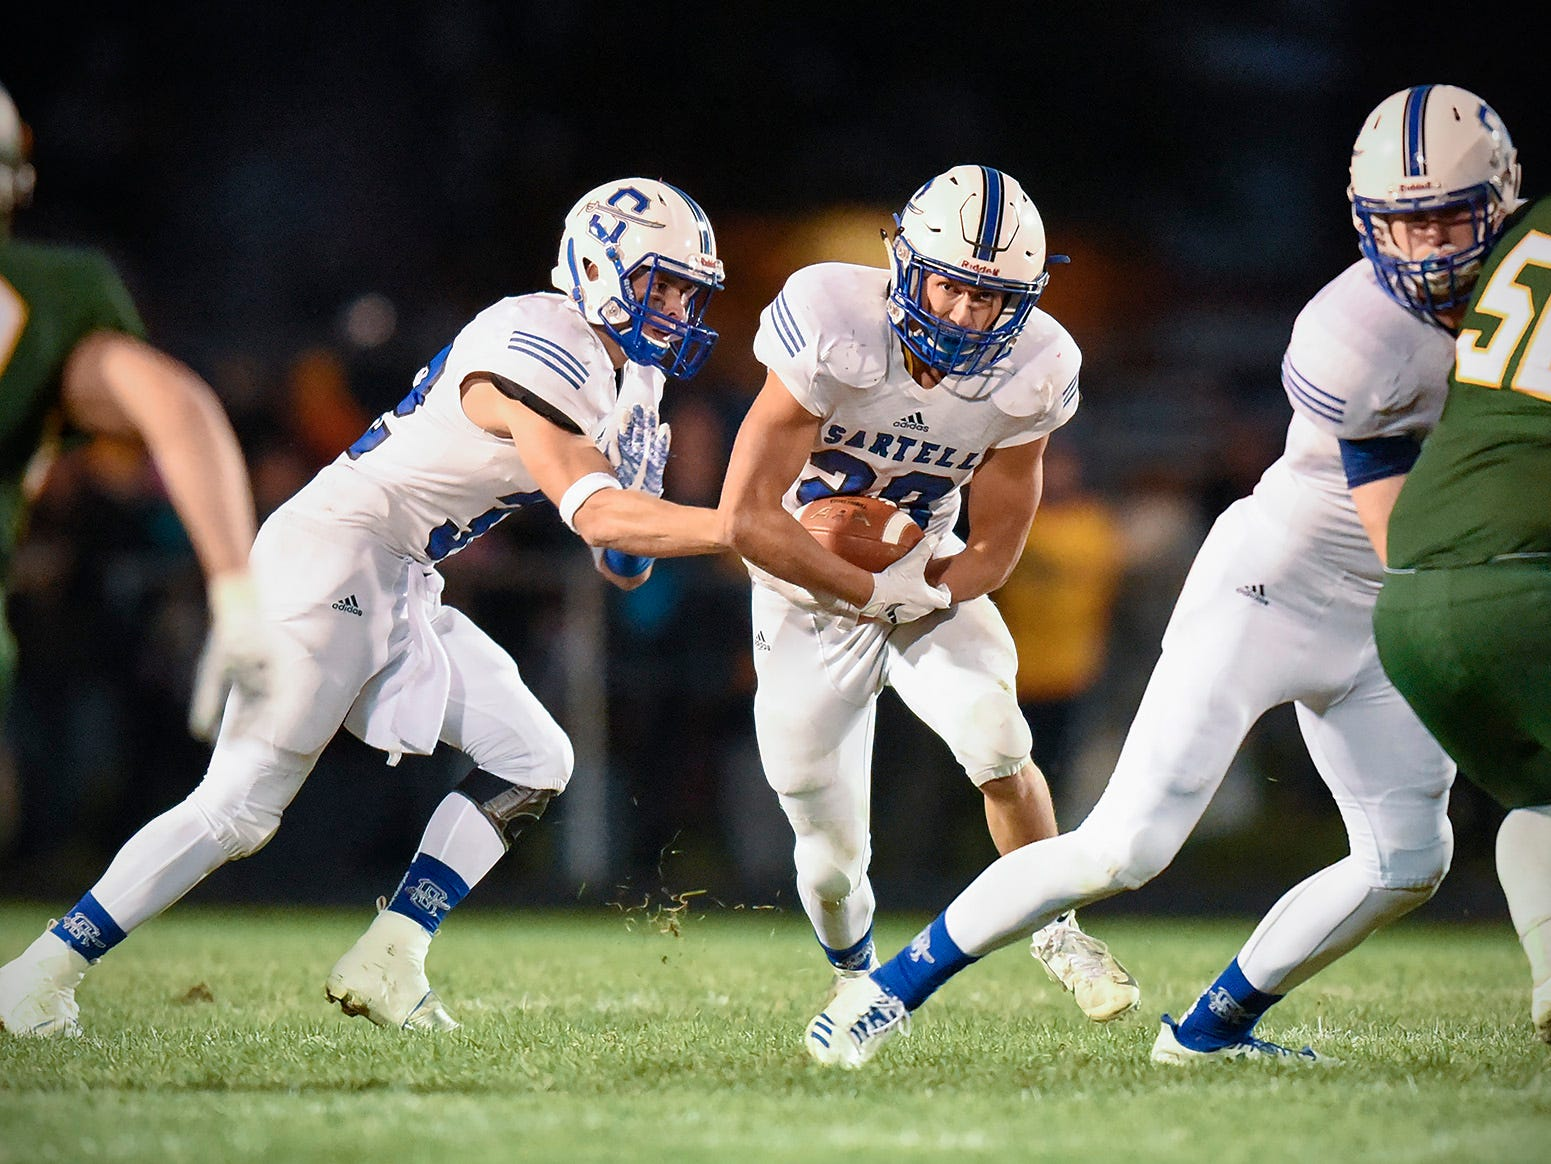 Sartell quarterback Ryan Giguere hands the ball to Cody Neitzke during the first half Friday, Sept. 28, in Sauk Rapids.